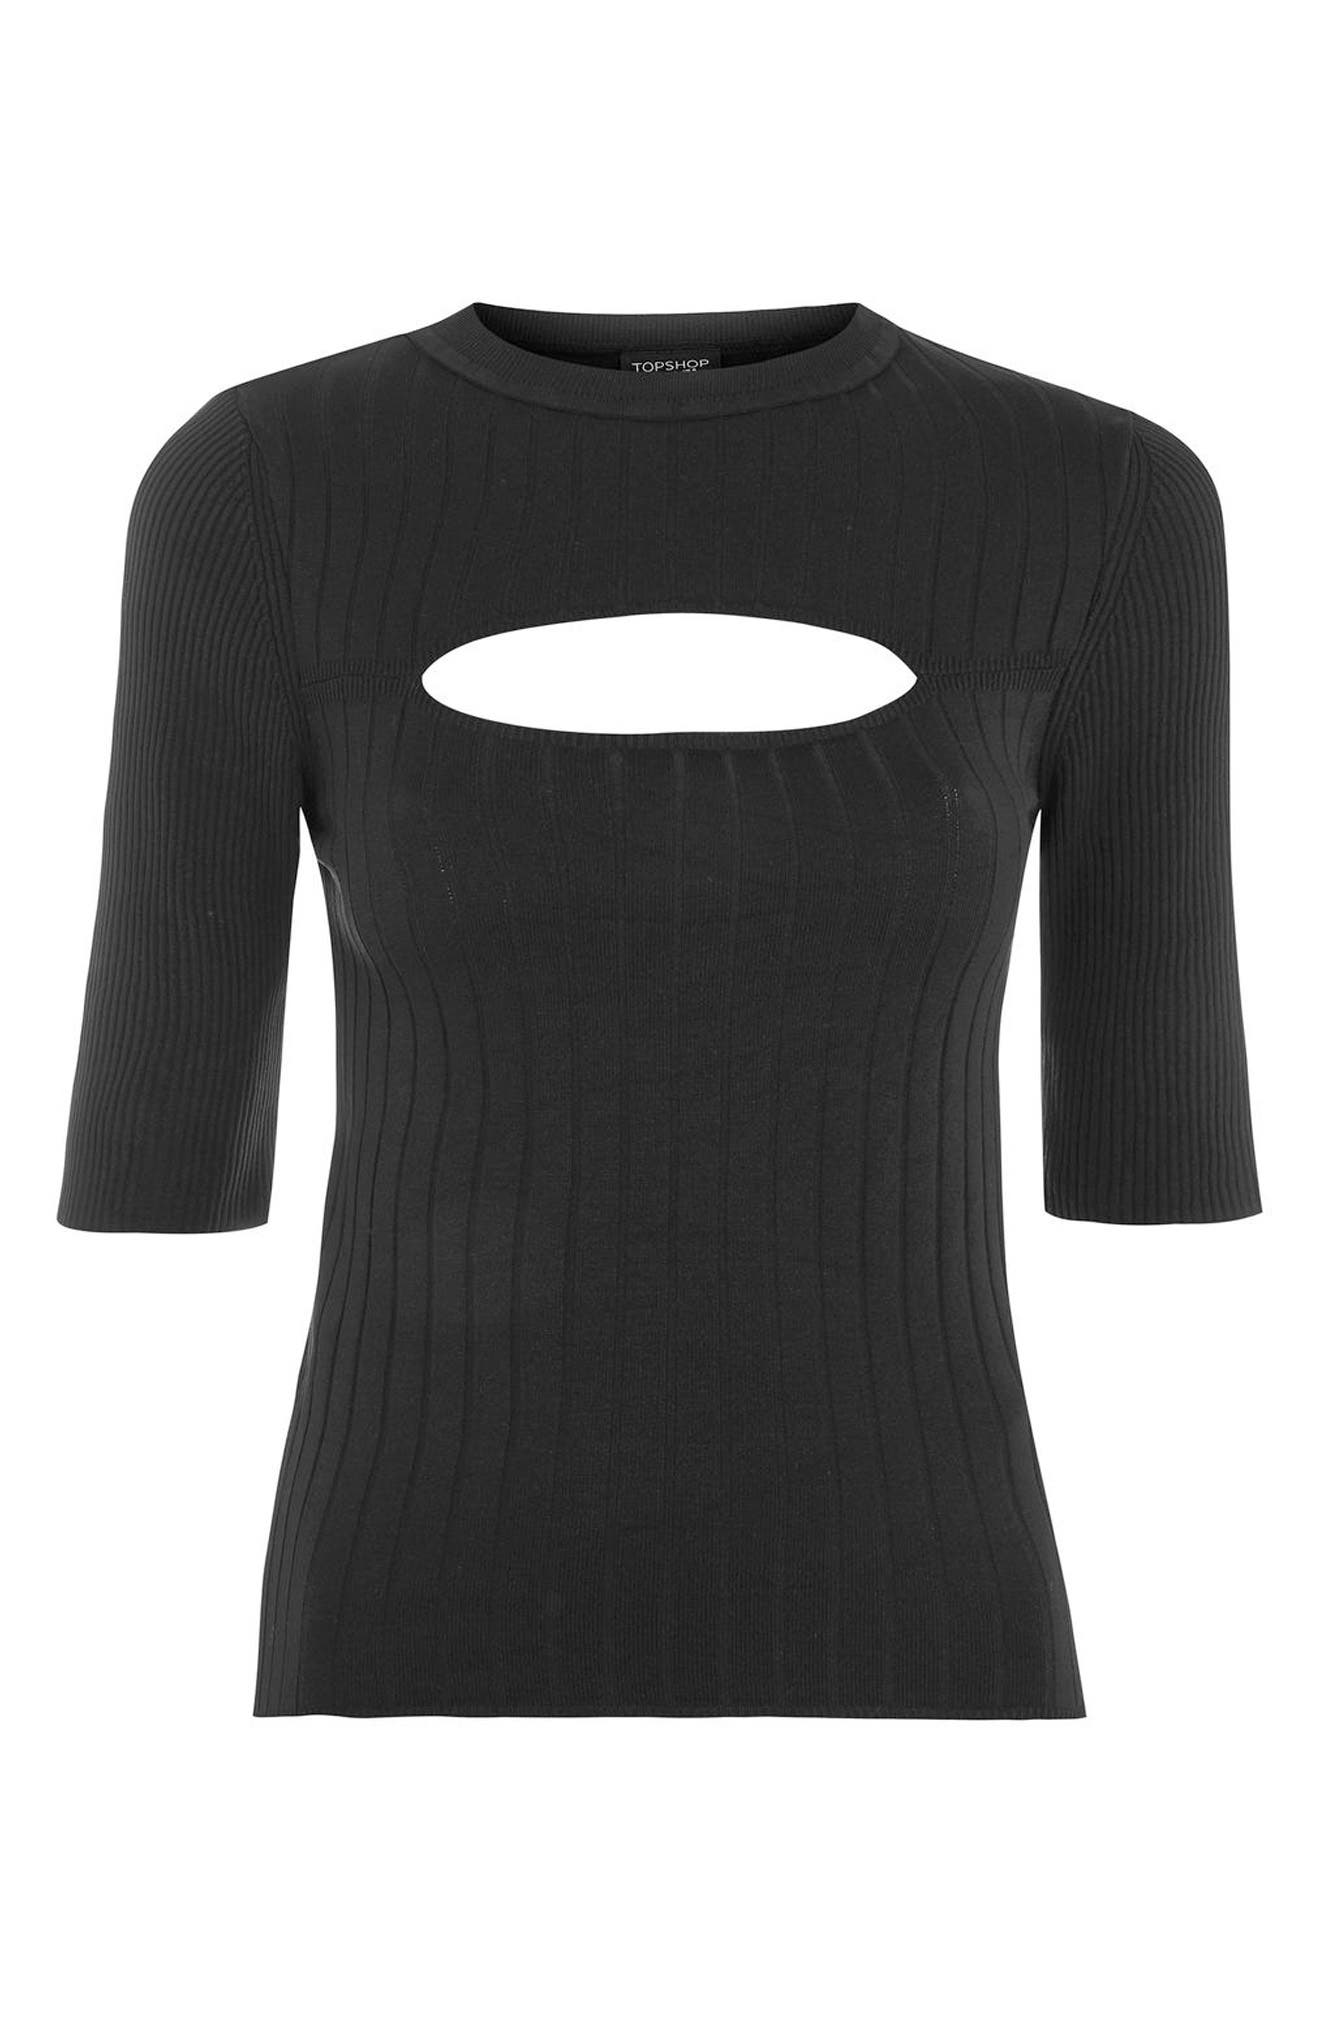 Spliced Rib Knit Top,                             Alternate thumbnail 4, color,                             001